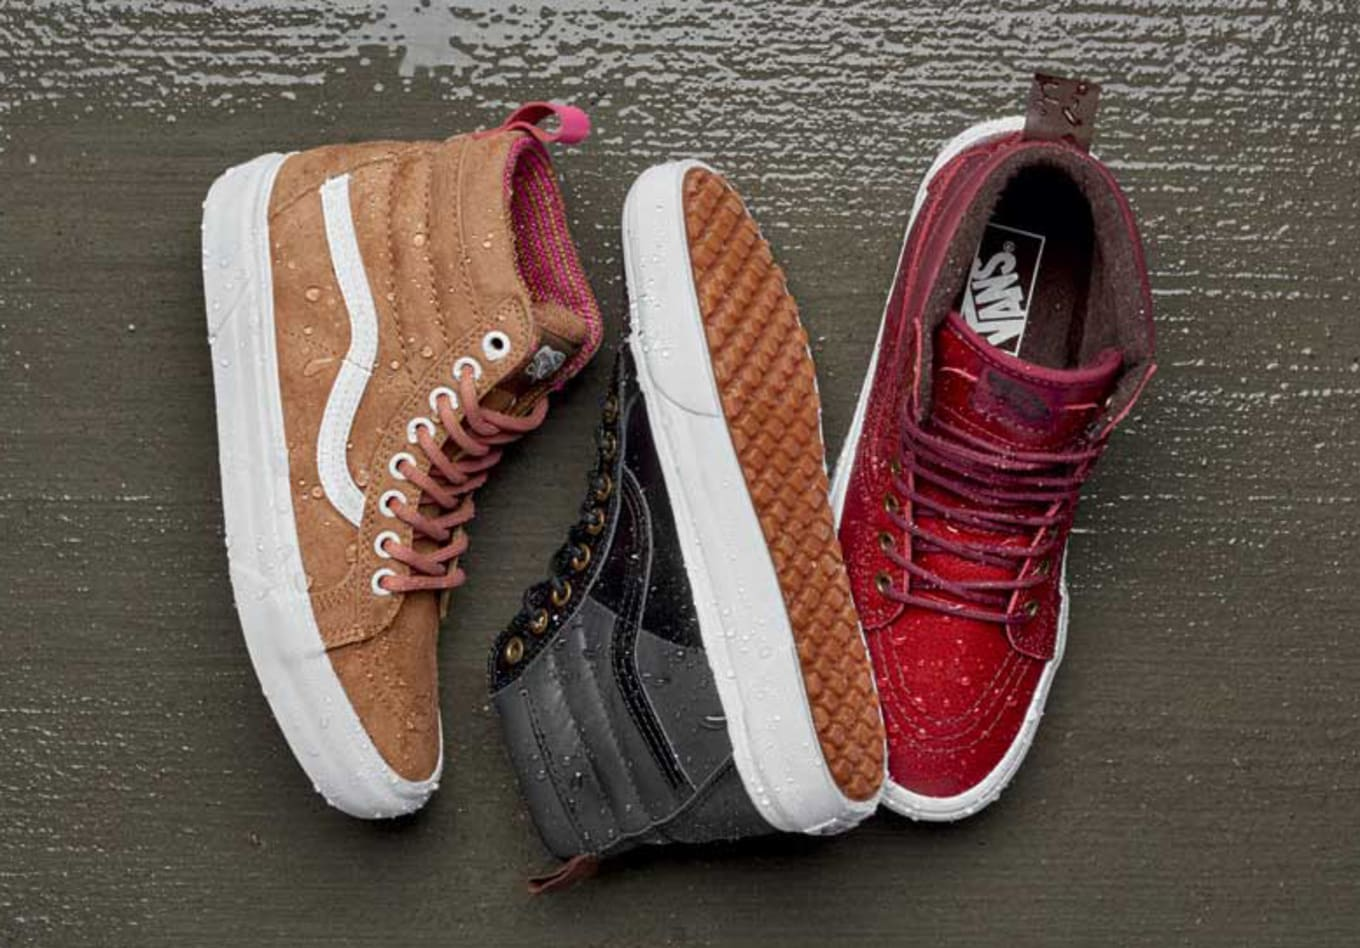 ea07e41ce4 Vans Made Sneakers You Can Wear in Any Weather. The latest from Vans   rugged MTE collection.